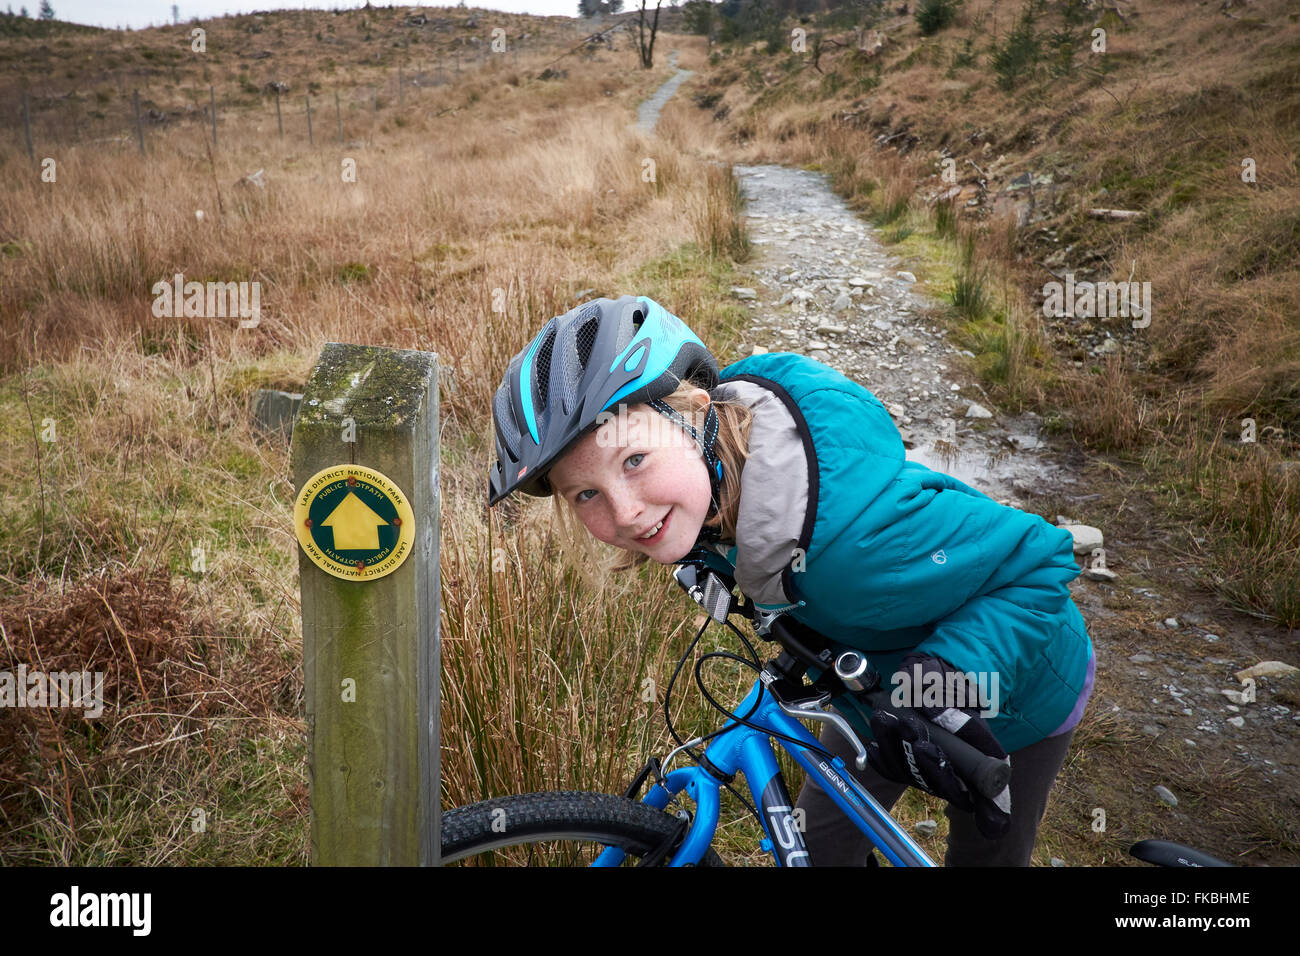 A girl smiles and laughs riding her bike offroad on a track - Stock Image